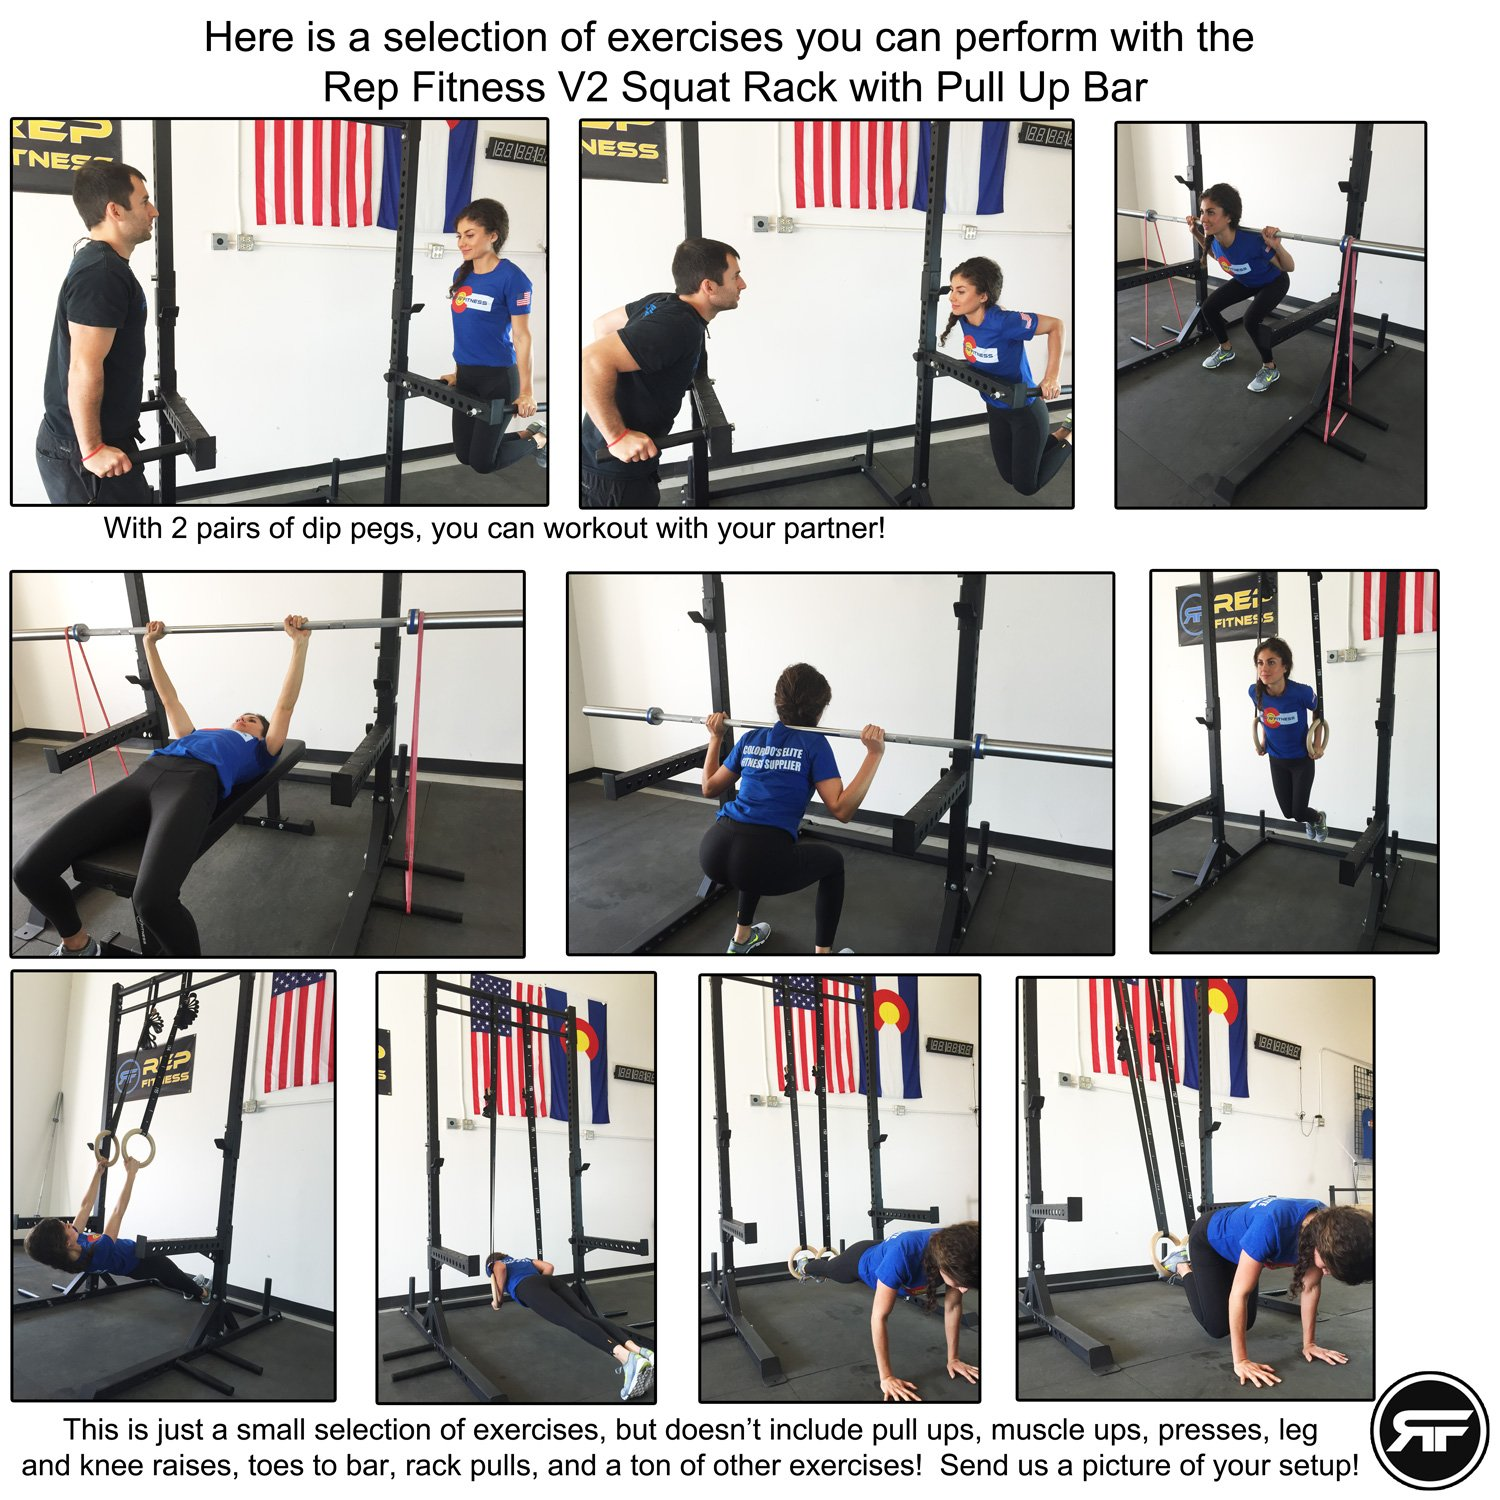 Rep Squat Rack with Pull Up Bar and Flat Bench - 110 in by Rep Fitness (Image #7)